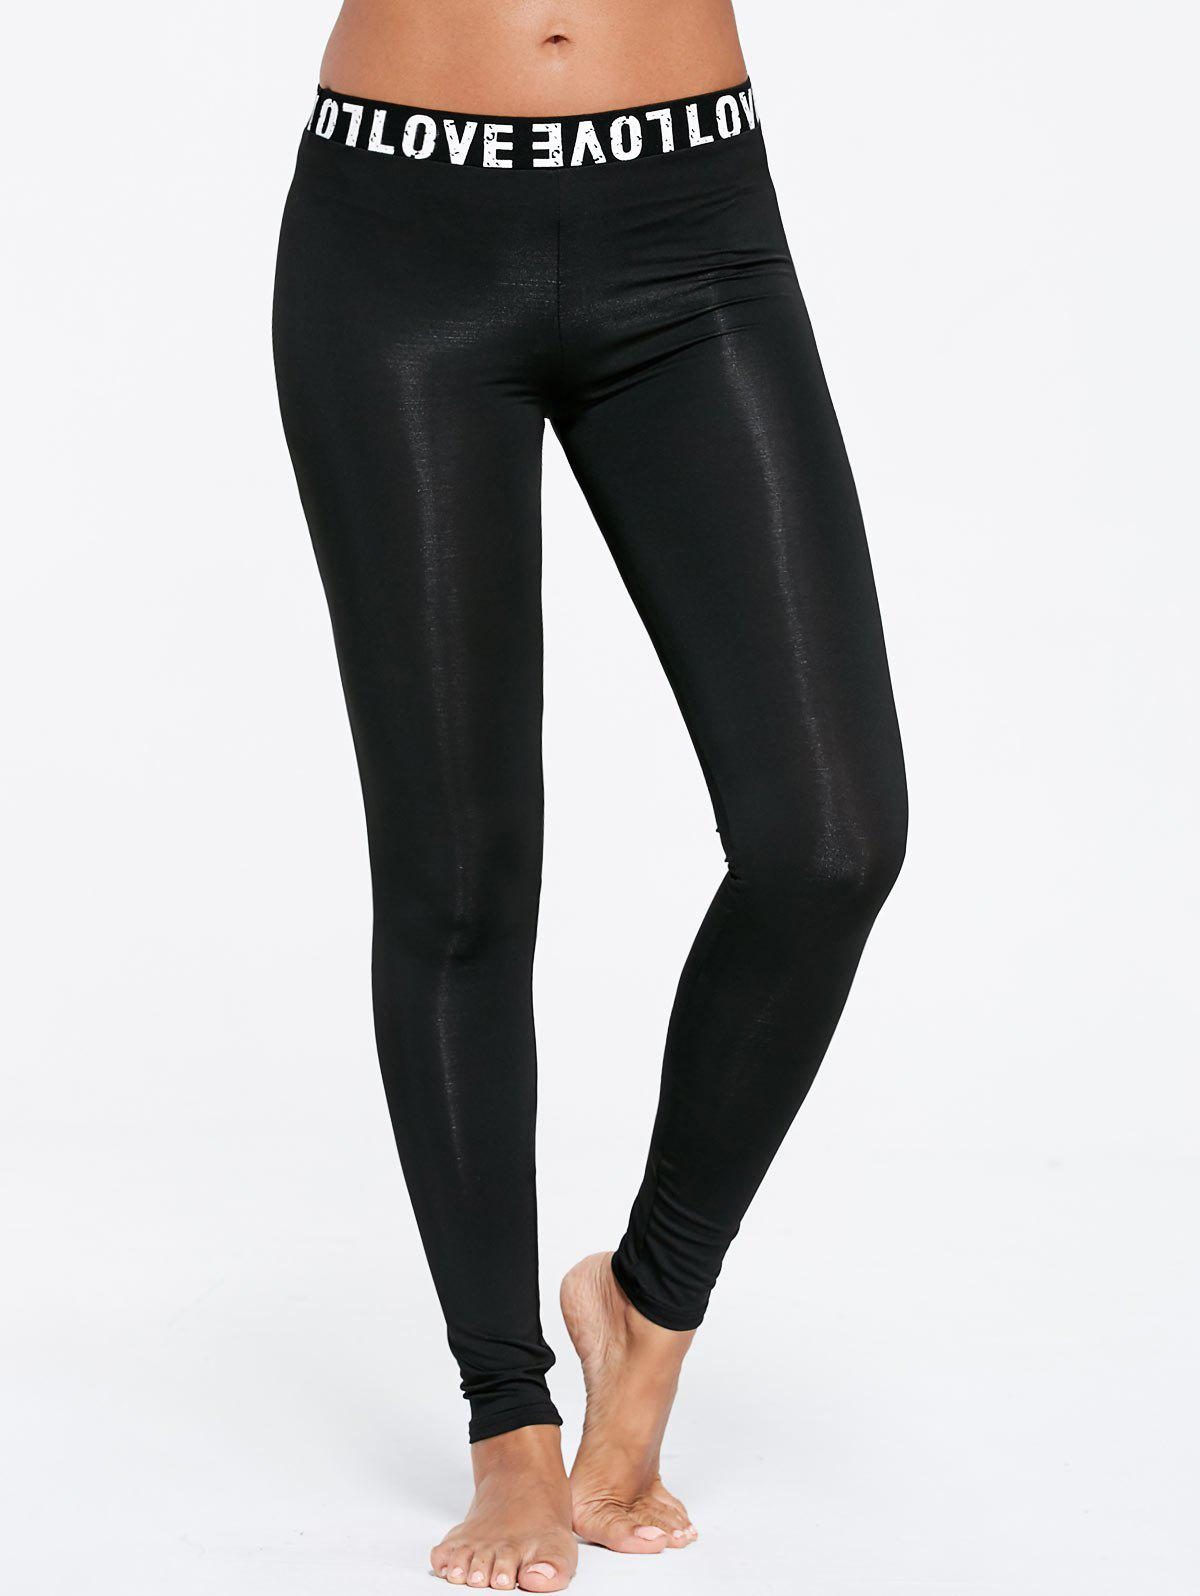 Love Trim Sports Tall Leggings - BLACK S